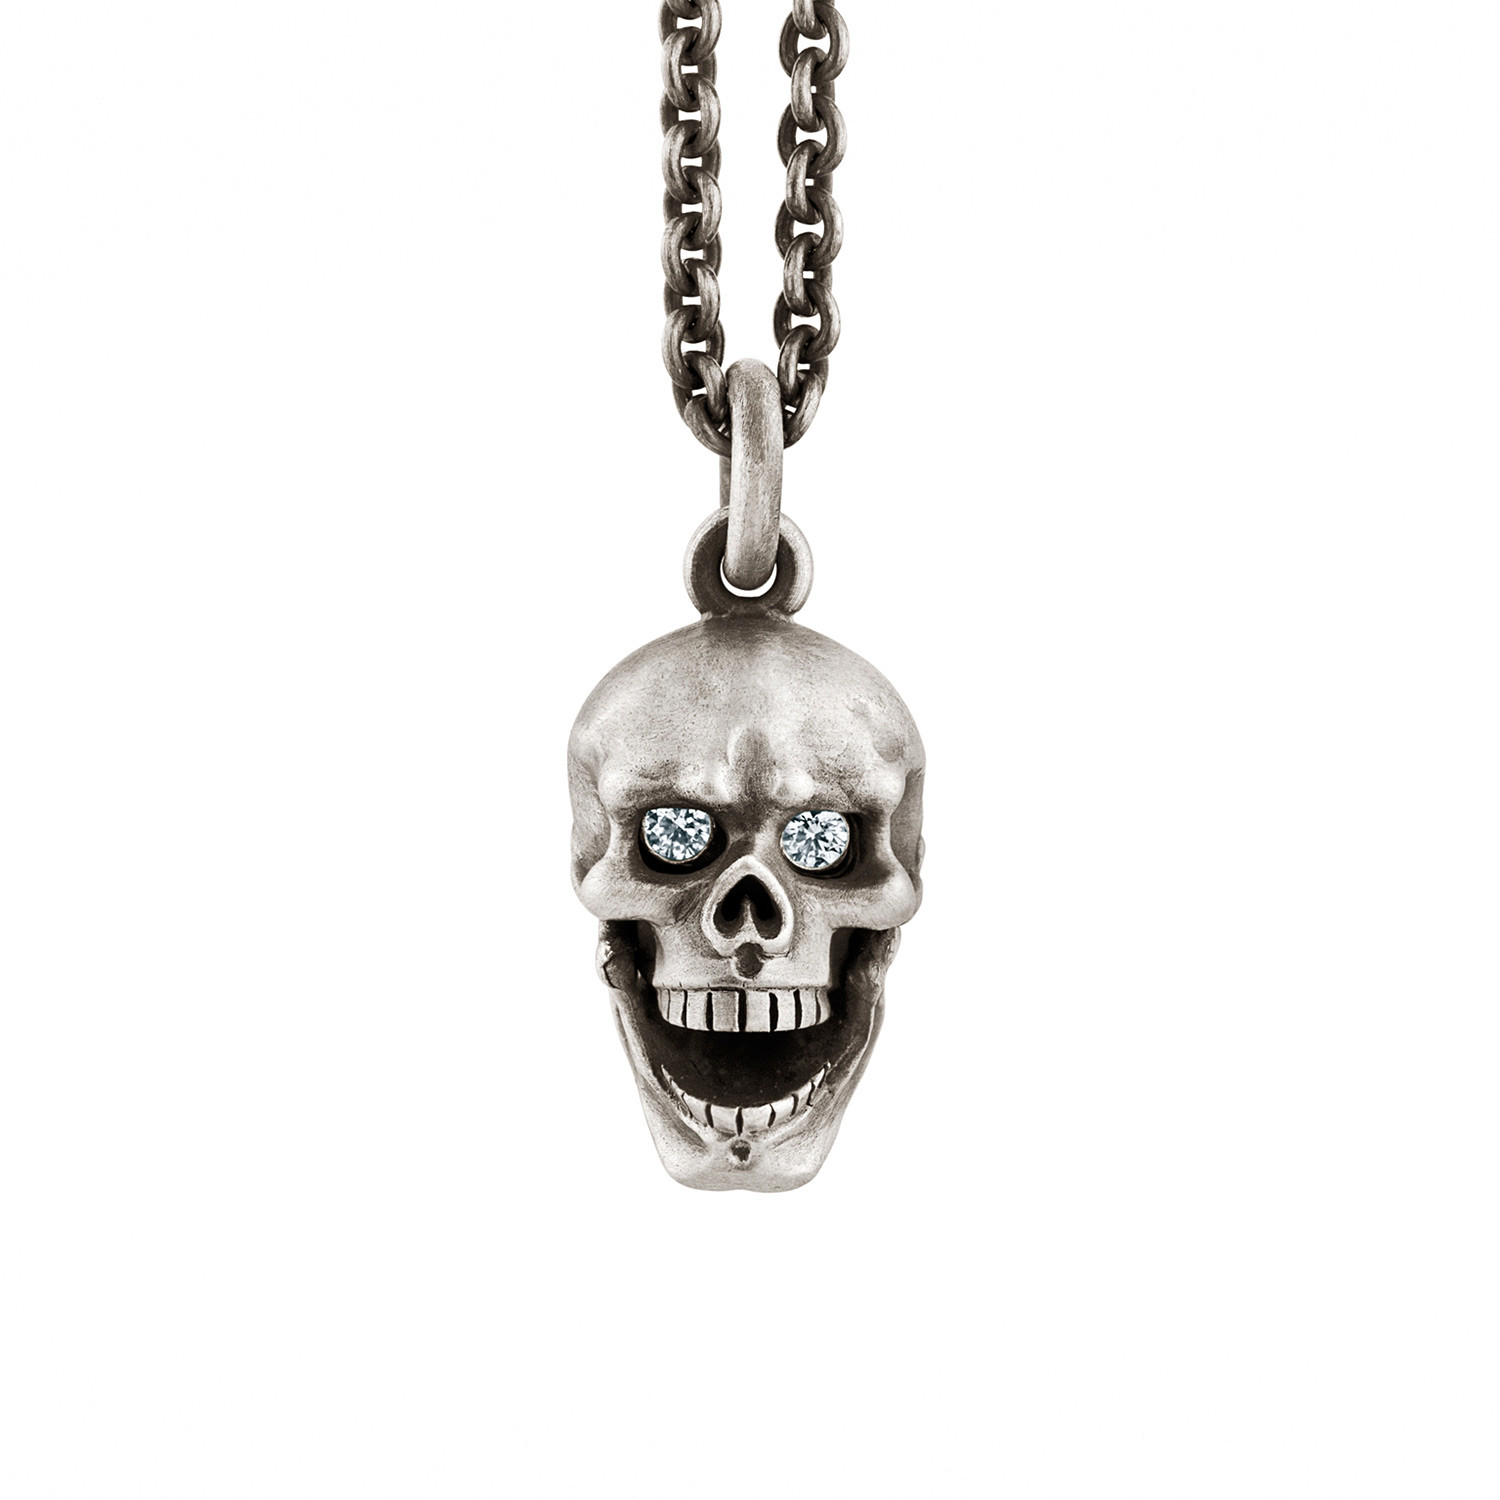 Diamond eyes hinged jaw skull pendant sterling silver snake diamond eyes hinged jaw skull pendant sterling silver mozeypictures Choice Image